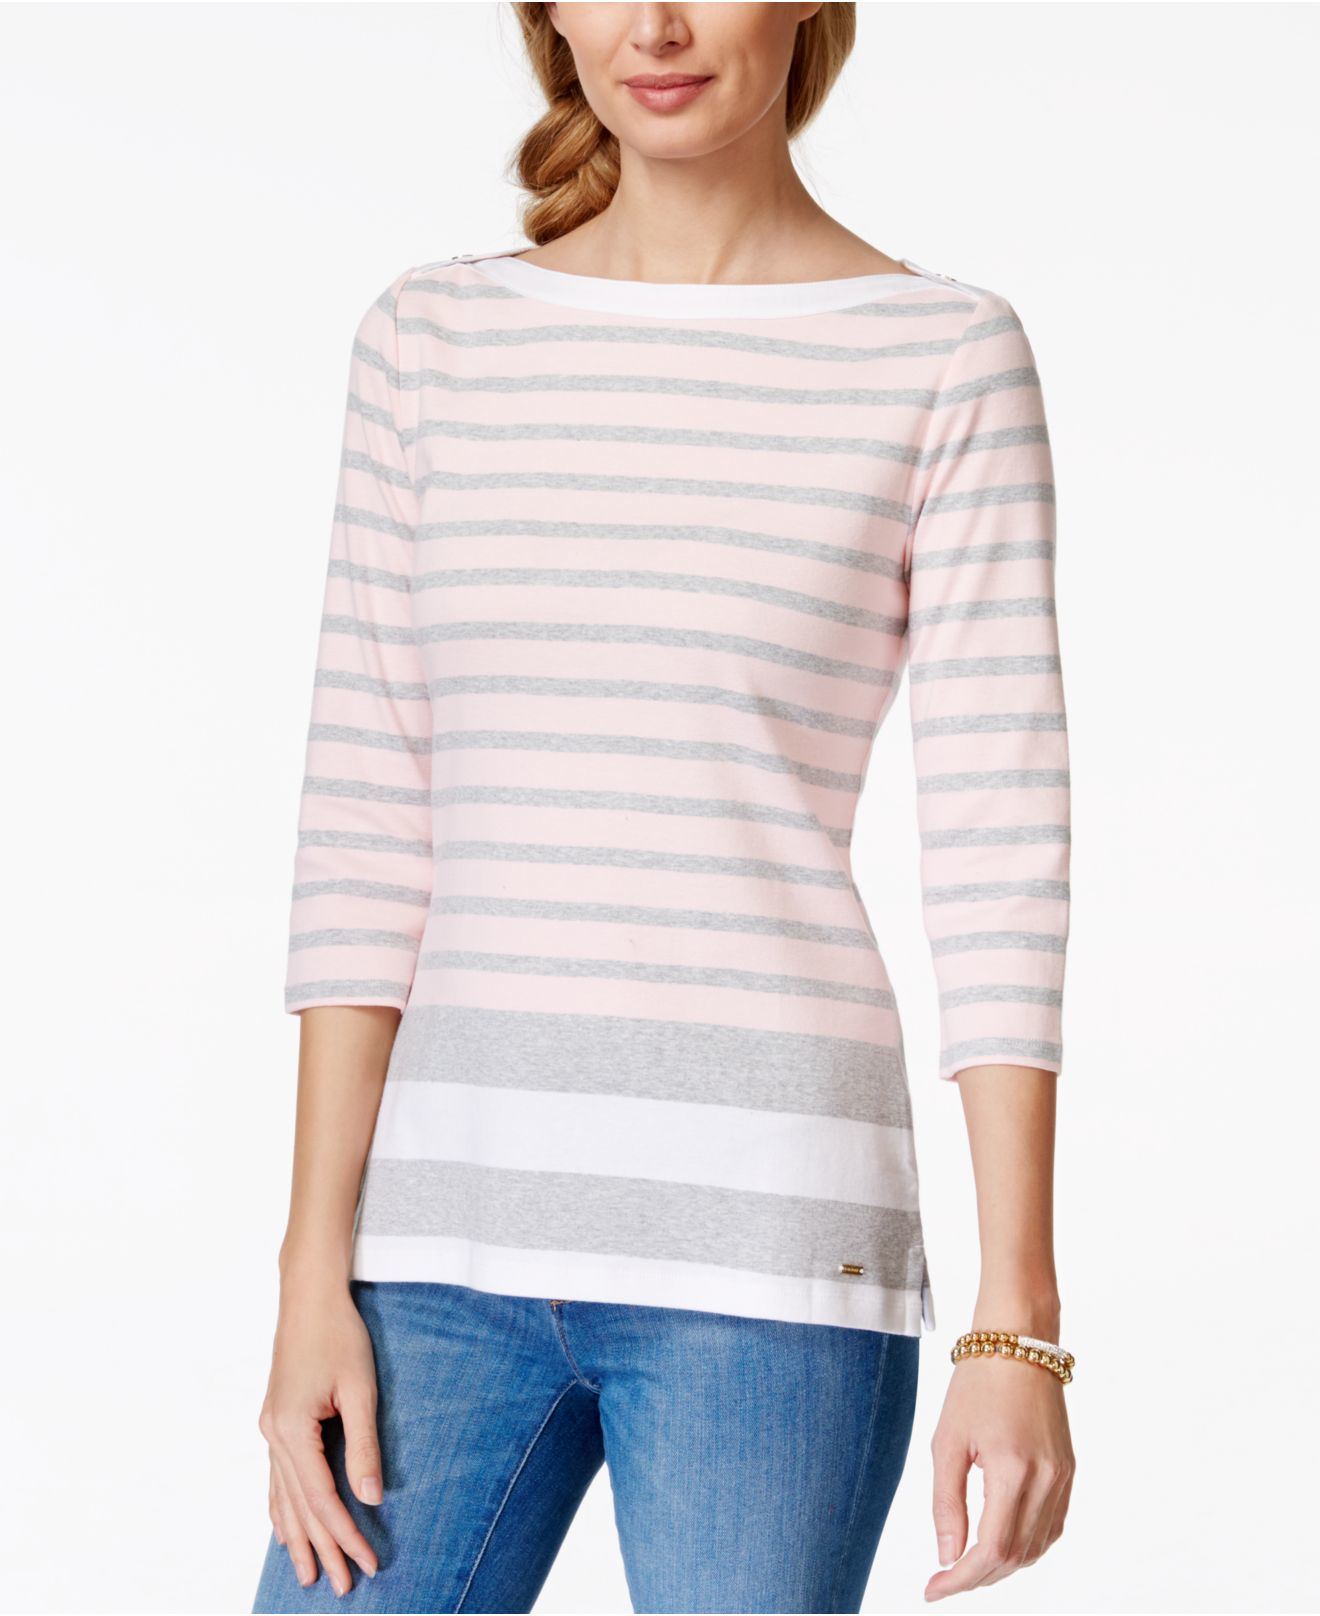 3 quarter sleeves t shirt featuring boat neck and contrast color striped. AvaCostume Women's White Black Striped Round Neck Long Sleeve Loose T-Shirt. by AvaCostume. $ POGTMM Long Sleeve Striped T Shirt Tunic Tops For Leggings For Women. by POGTMM. $ - $ $ 13 $ 17 99 Prime. FREE Shipping on eligible orders.